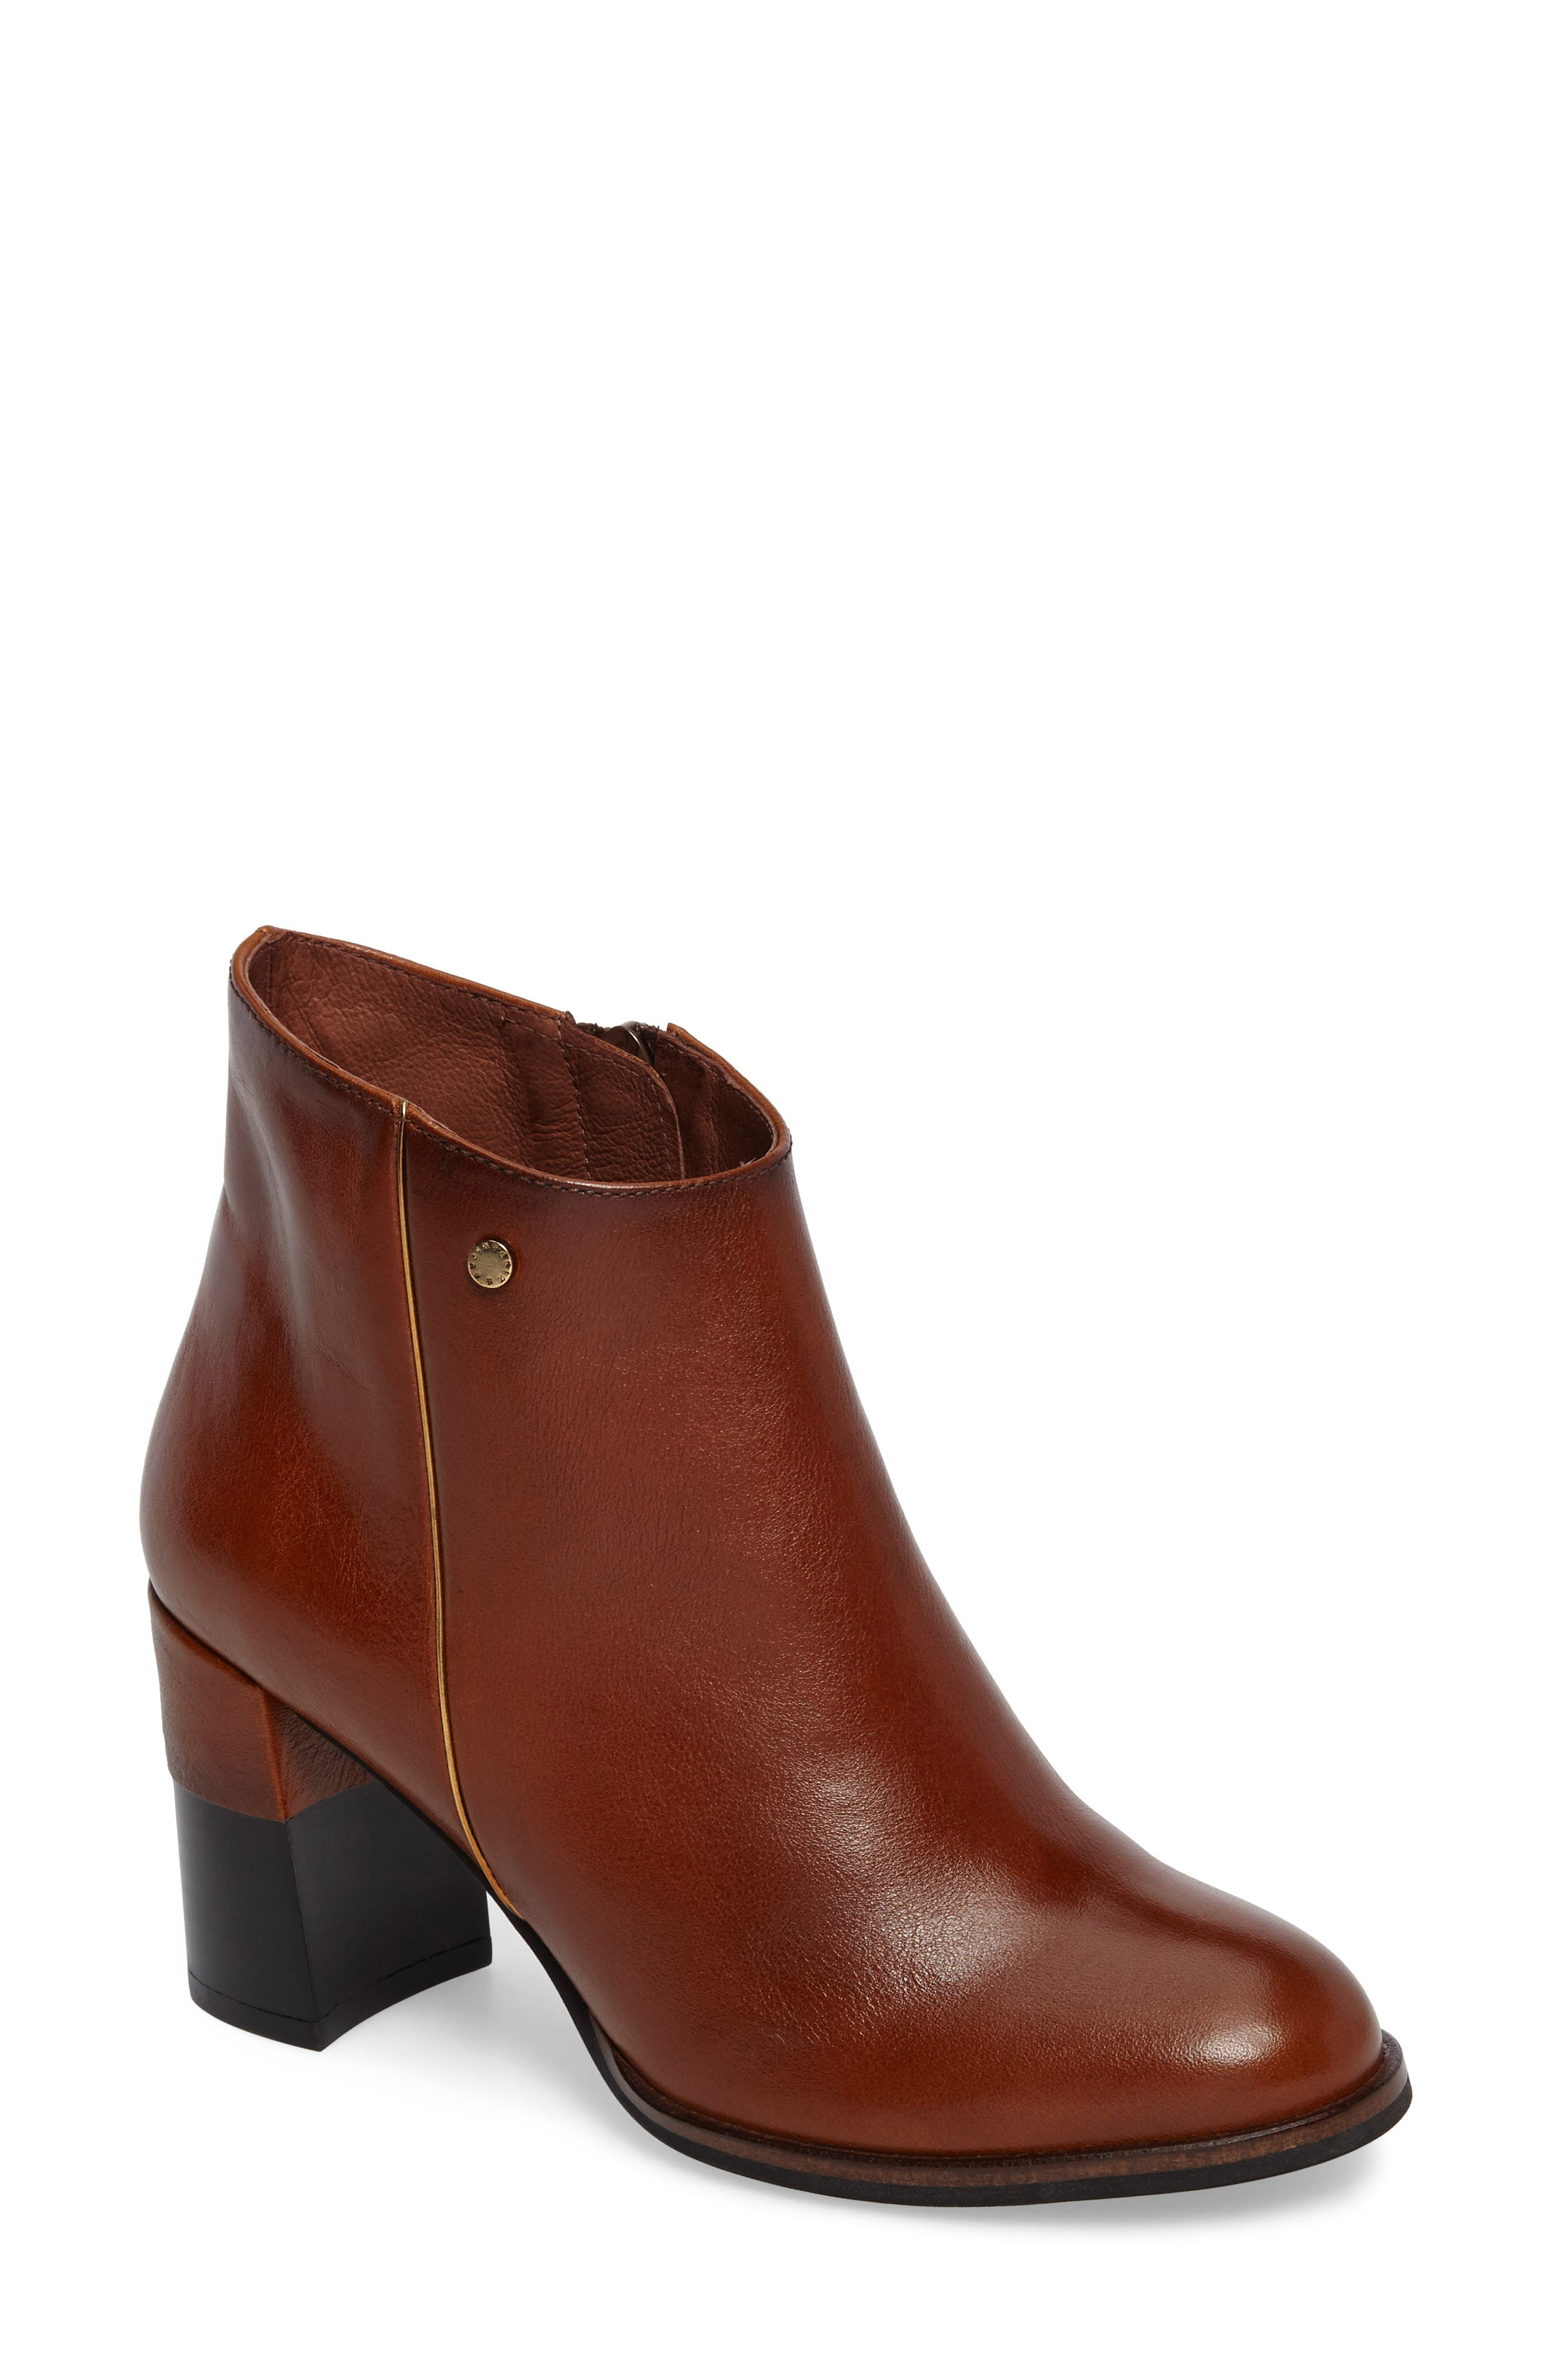 HISPANITAS Ashbury Bootie, Main, color, CUOIO LEATHER